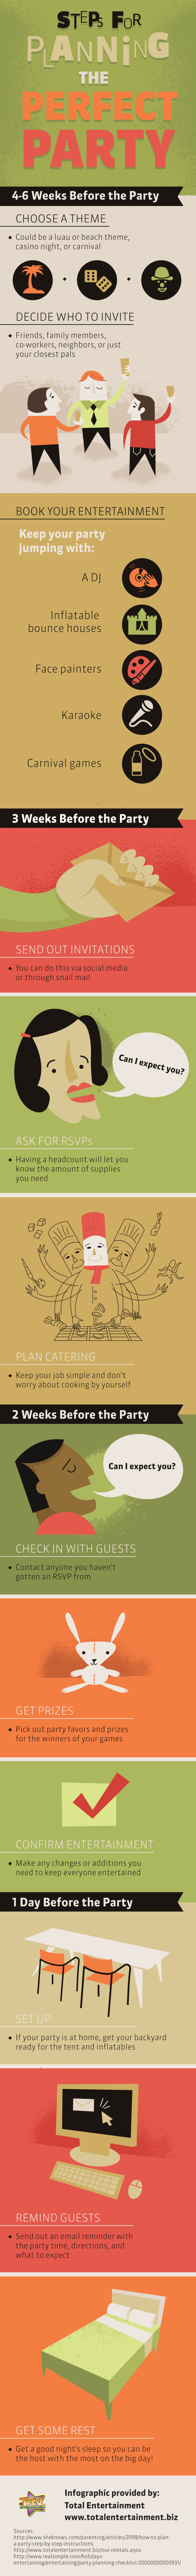 Steps-For-Planning-The-Perfect-Party-Infographic[1]